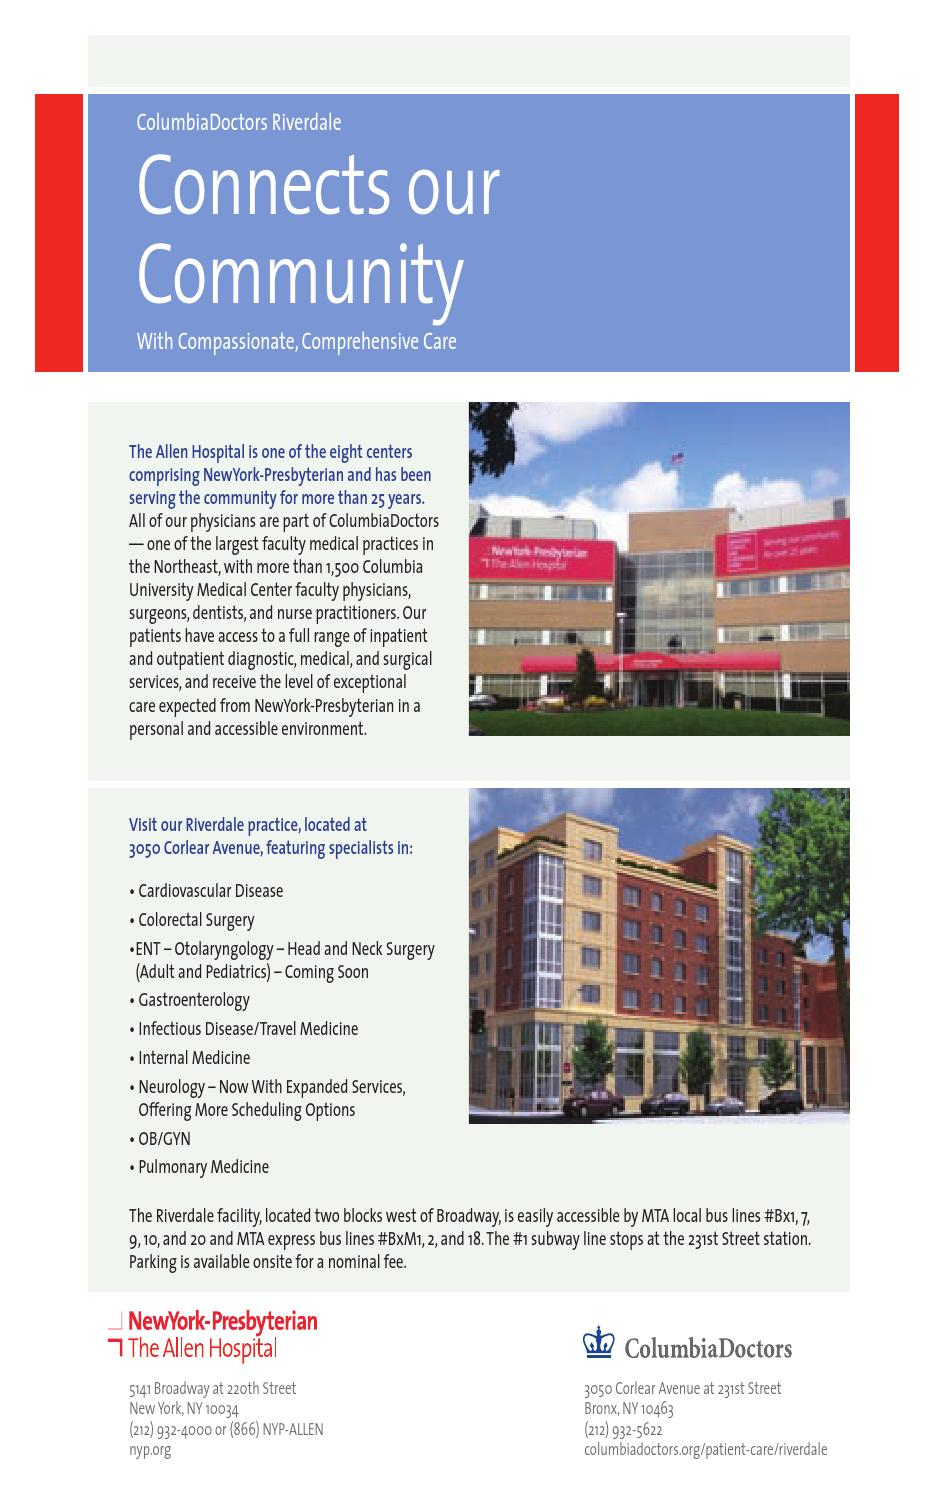 Living In Riverdale 2015 by Riverdale Press - issuu